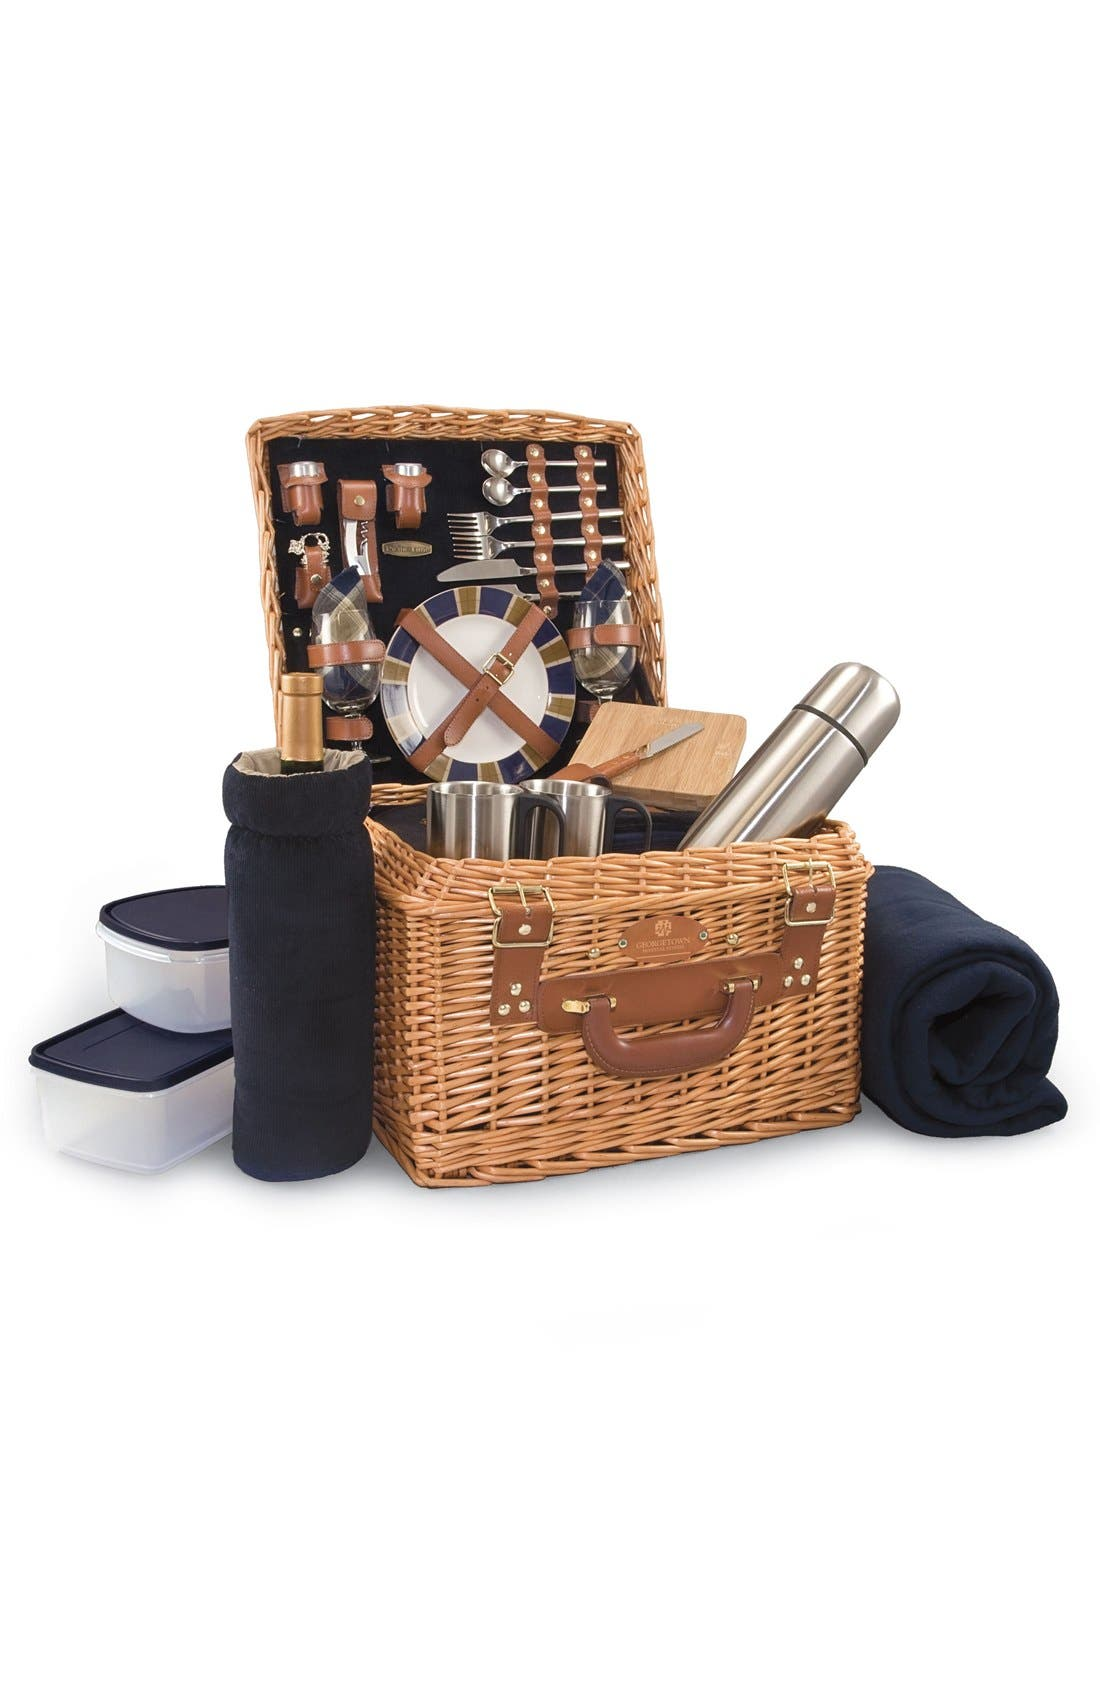 Alternate Image 1 Selected - Picnic Time 'Canterbury' Wicker Picnic Basket